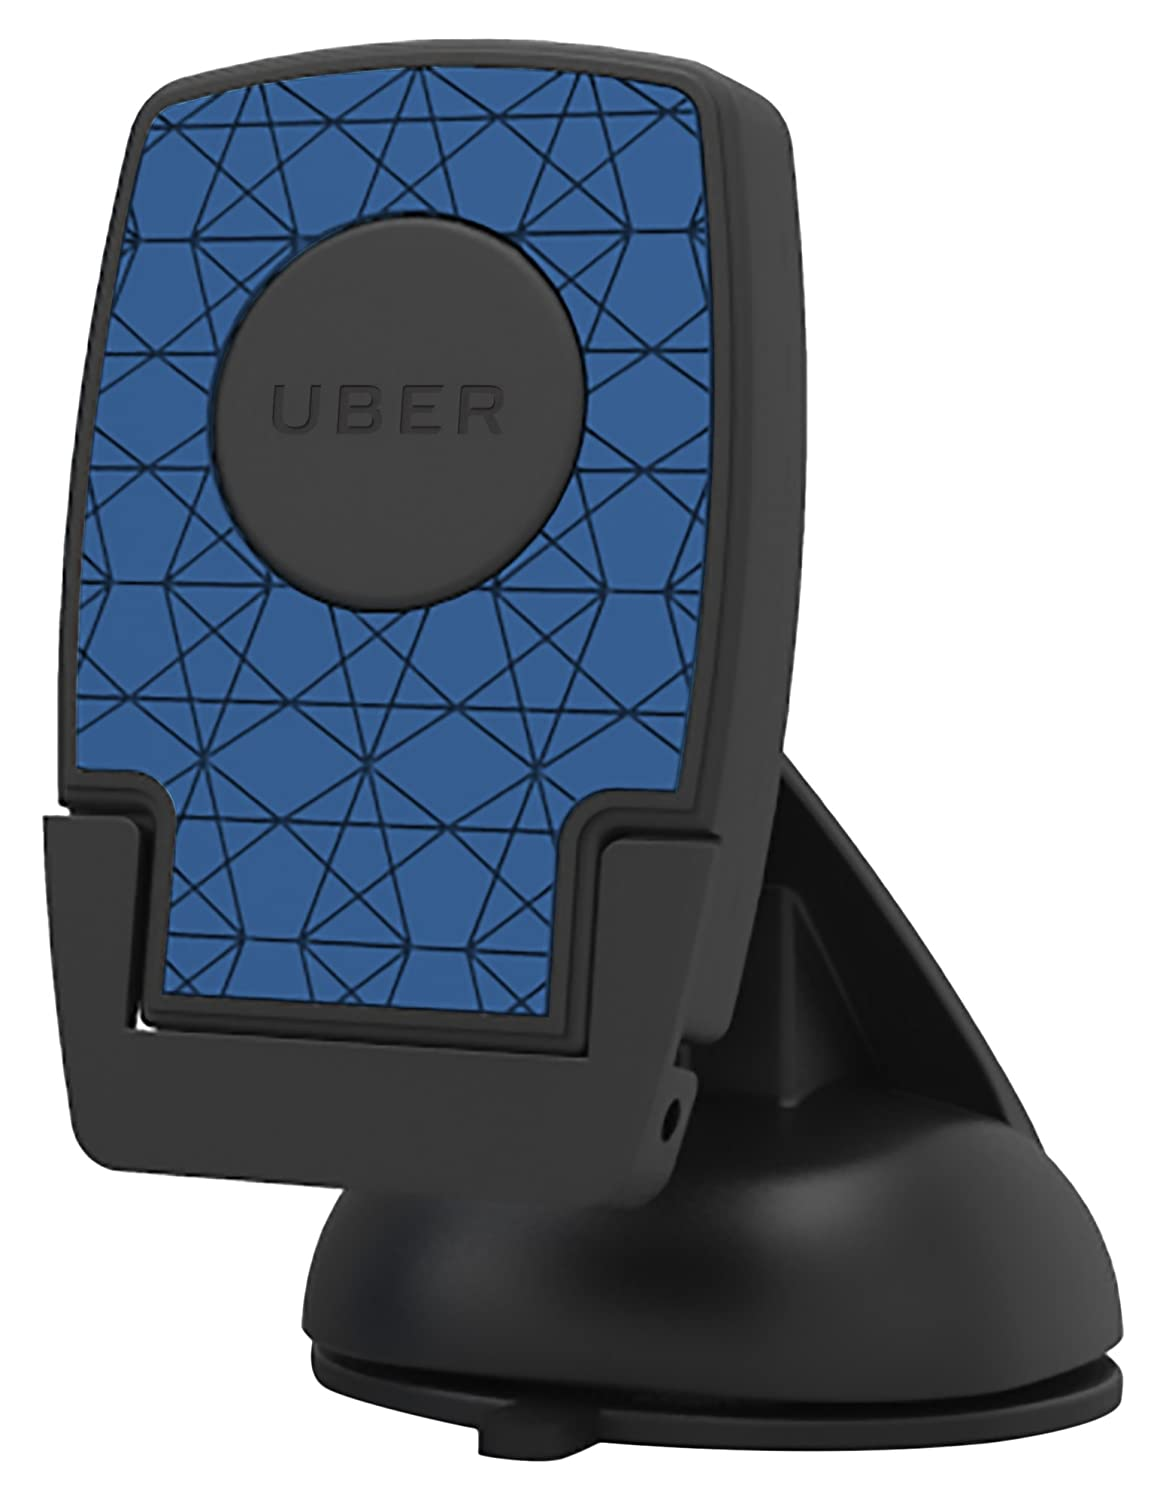 Uber by Bracketron Dash Window Magnet Car Mount Phone Holder Hands Free Law Compatible with iPhone X 8 Plus 7 SE 6s 6 5s 5 Samsung Galaxy S9 S8 S7 S6 S5 Note Google Pixel 2 XL LG Nexus Sony UB1-668-2